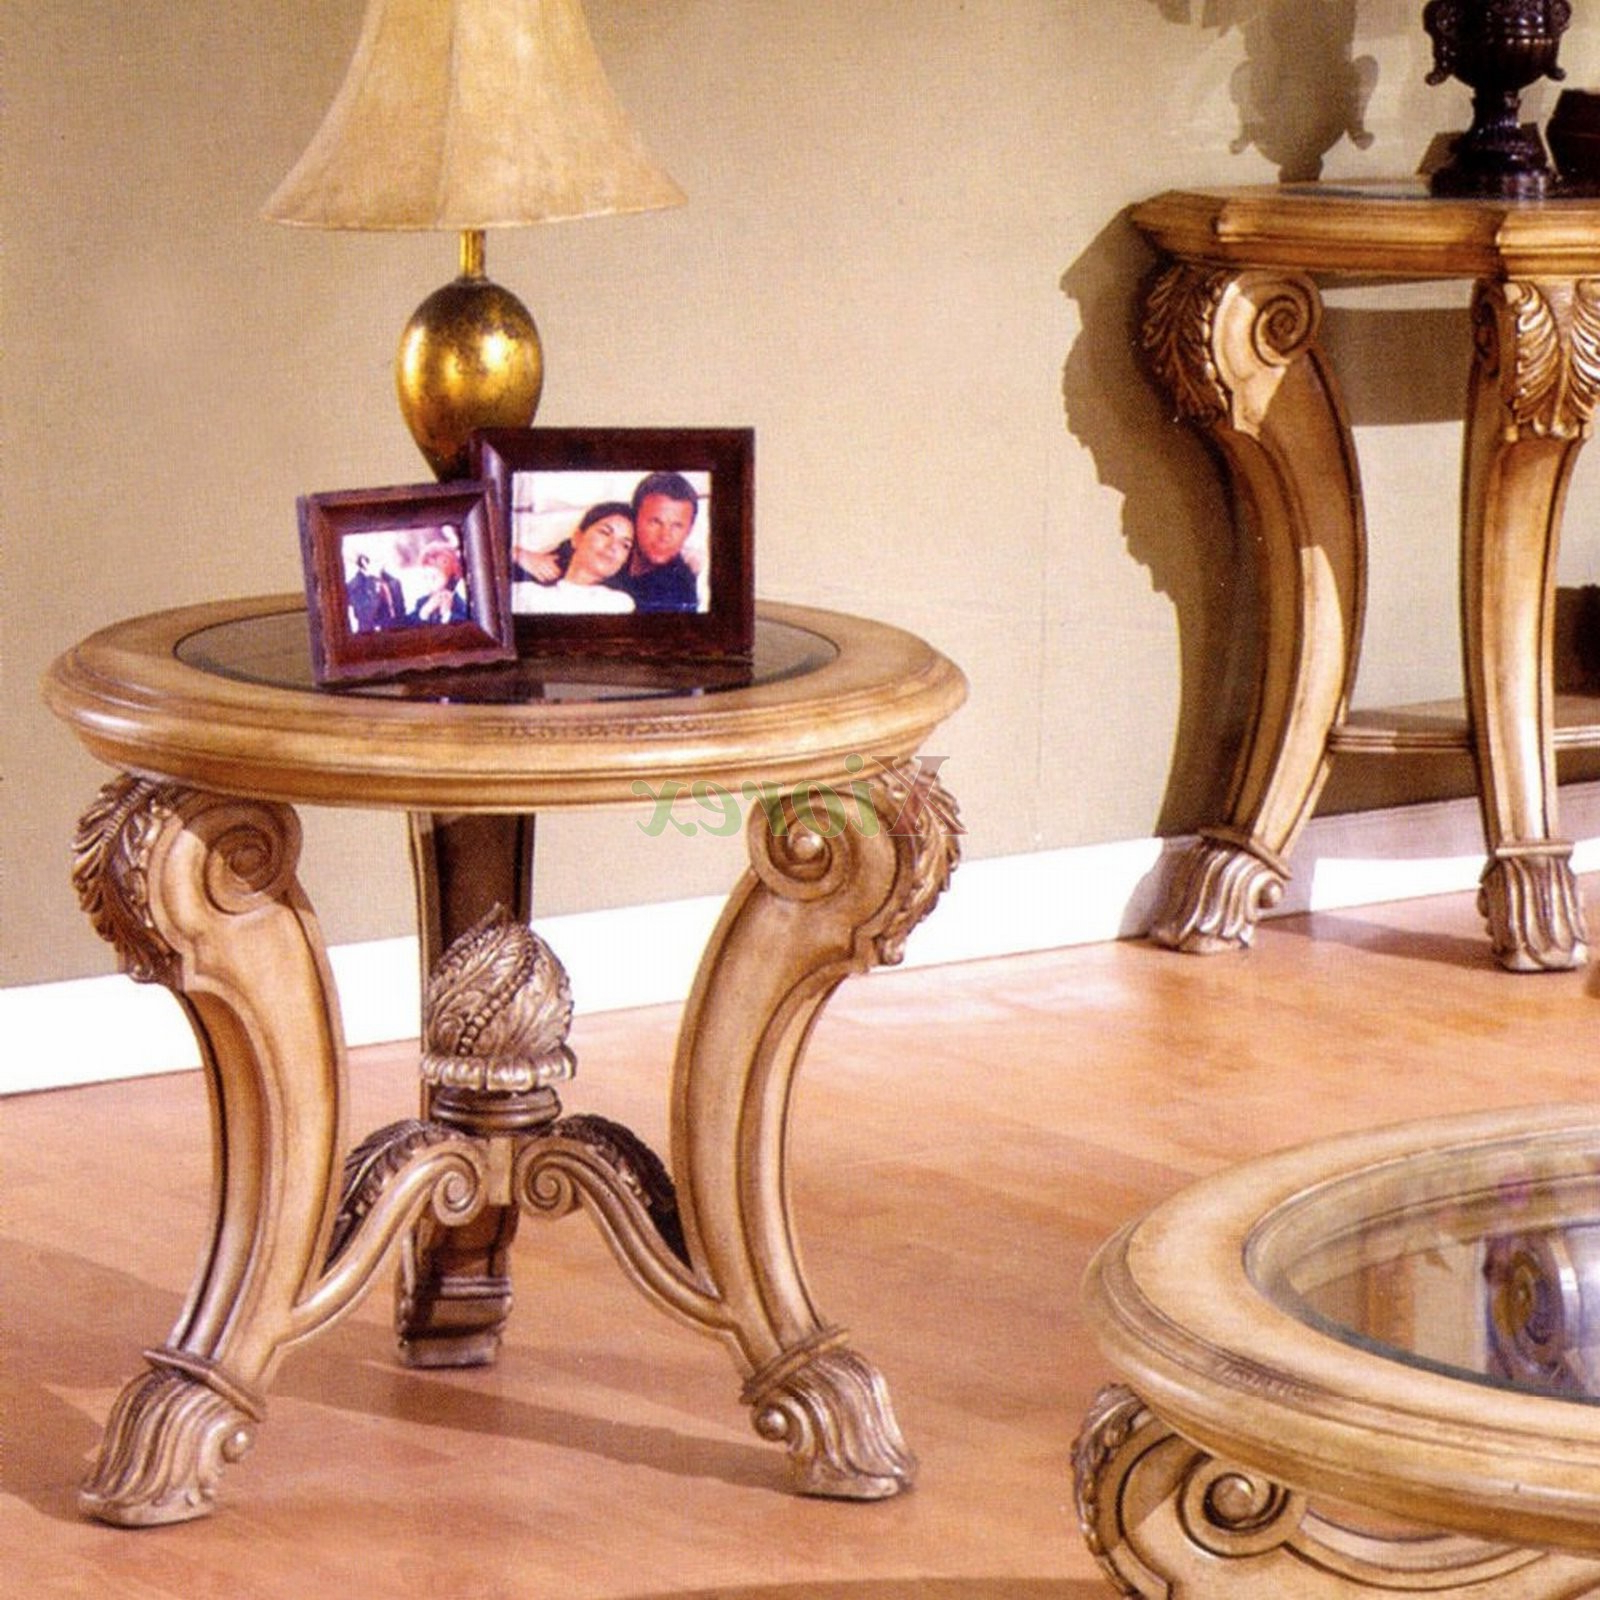 Carved Wooden Round Coffee Table Ideas Corvi Glass Top End Tables Throughout Trendy Round Carved Wood Coffee Tables (Gallery 13 of 20)